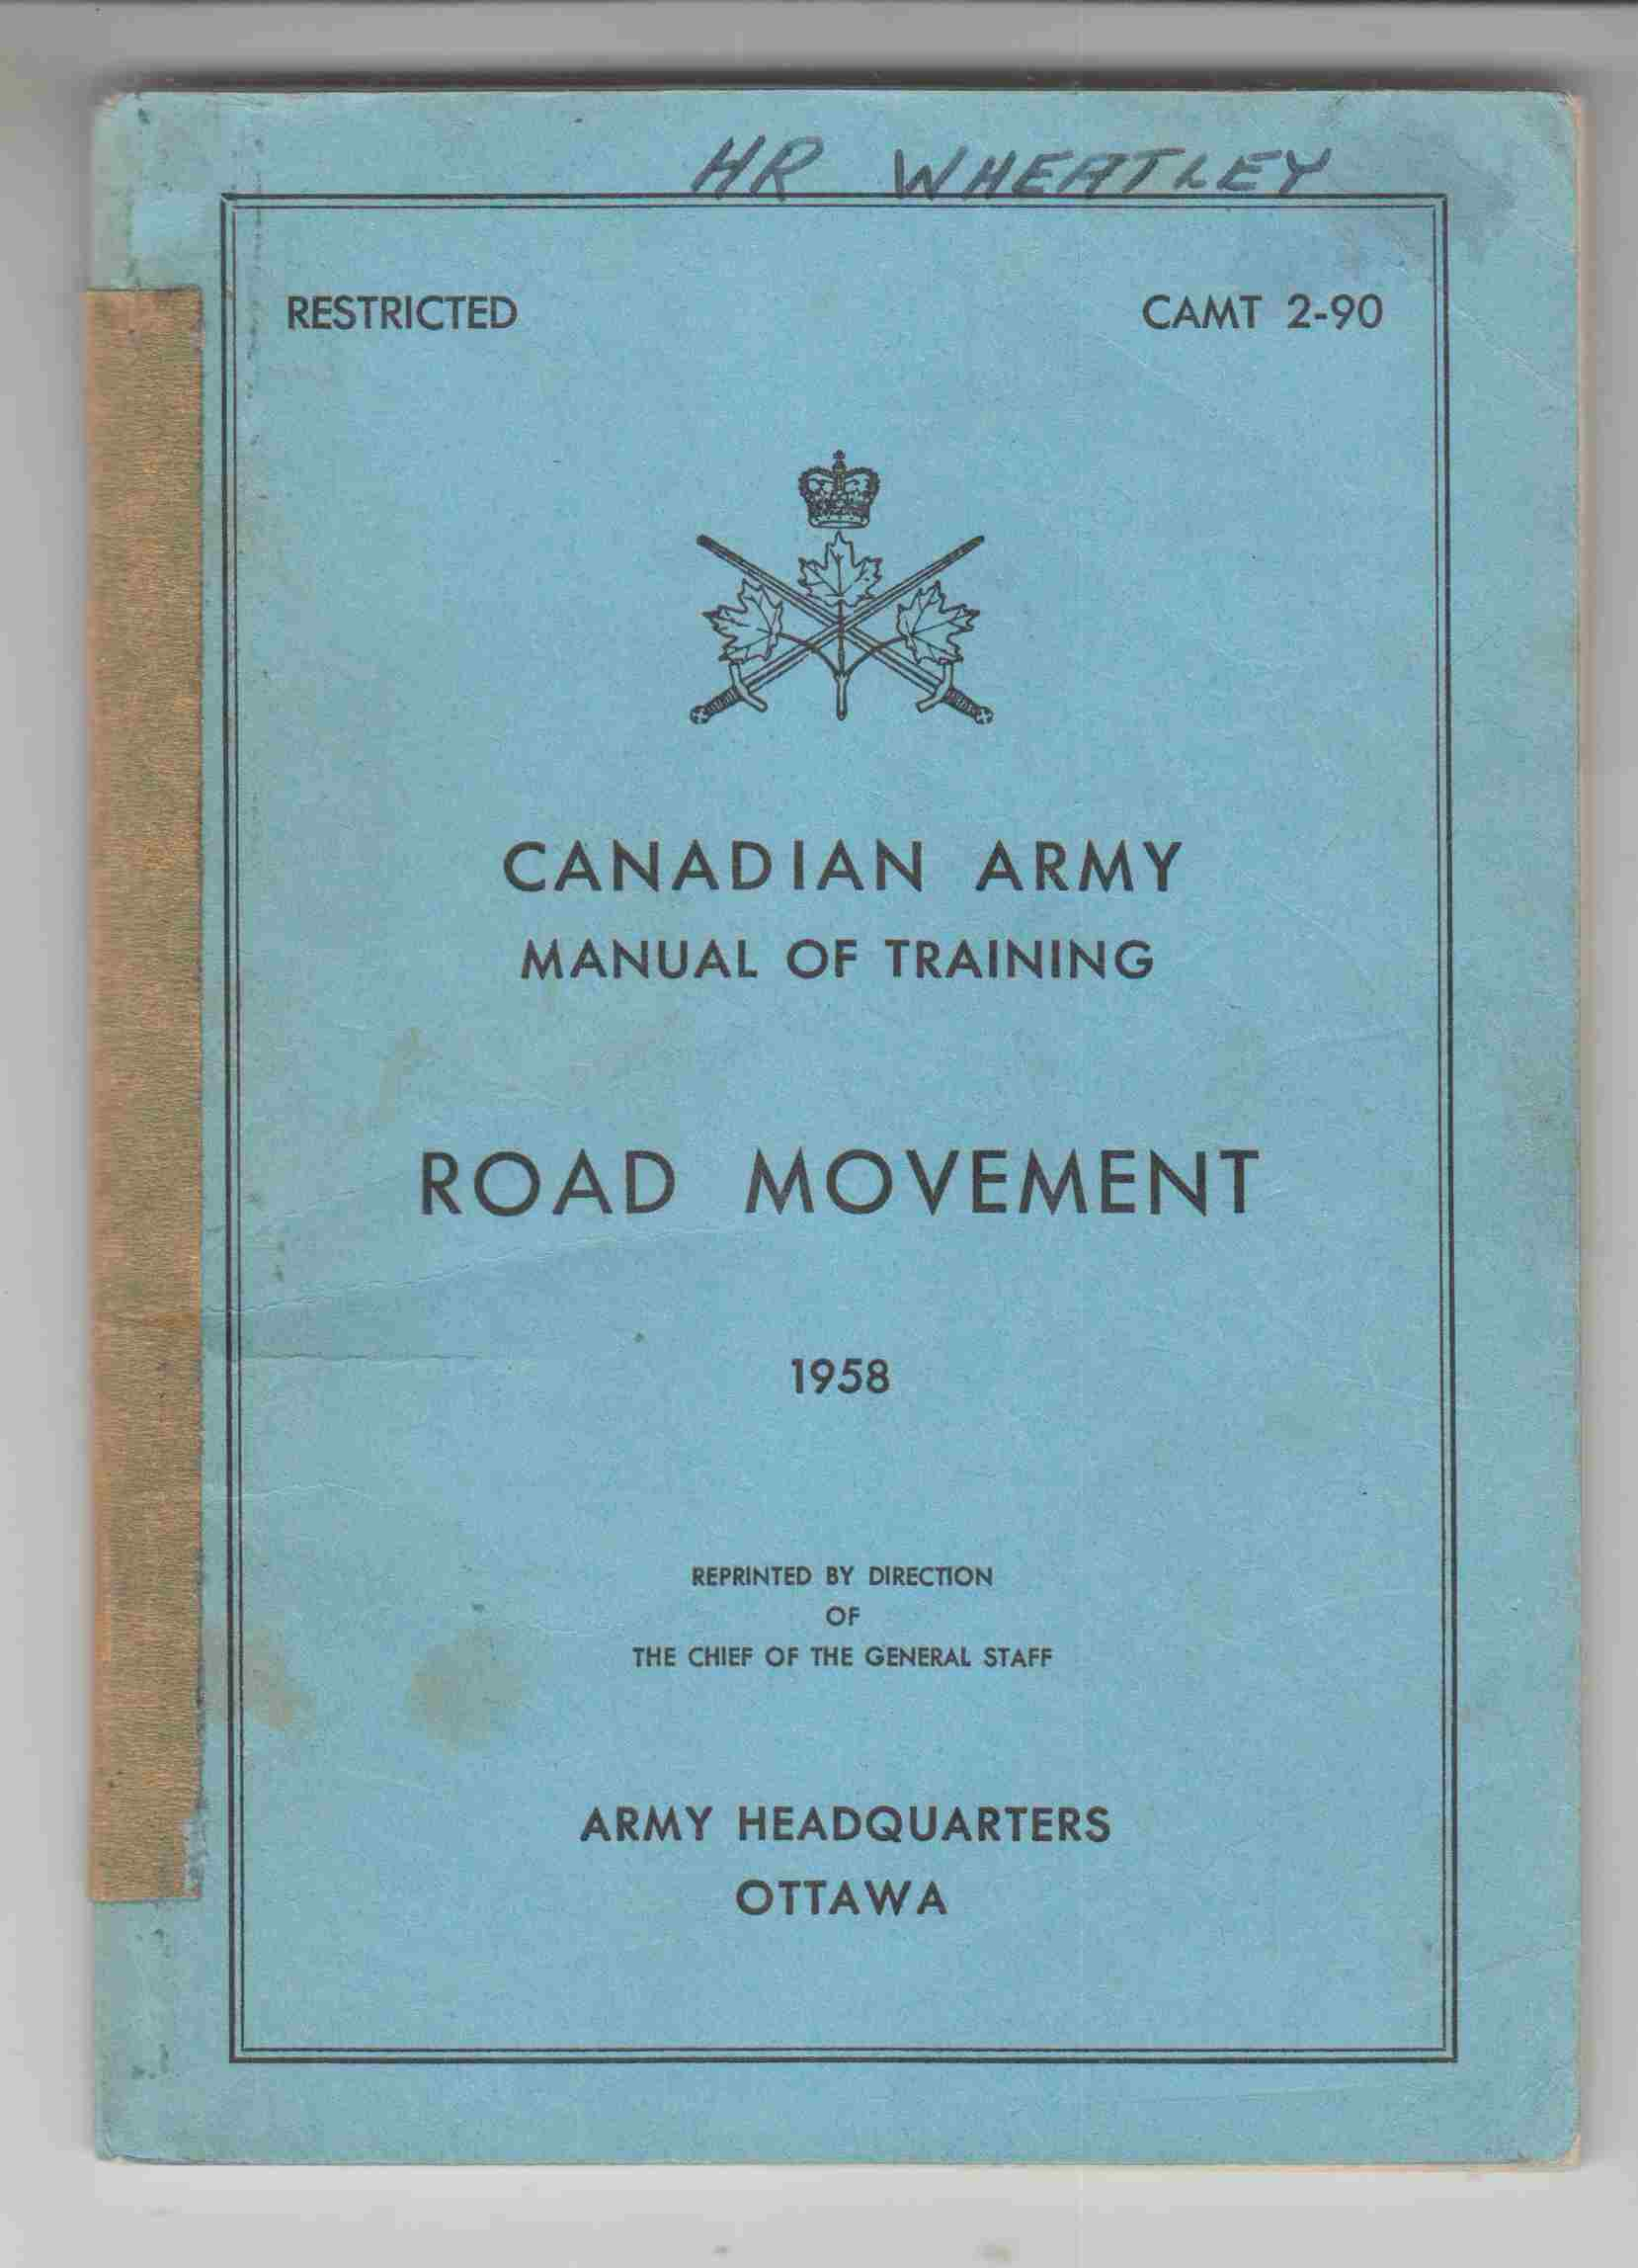 Image for Canadian Army Manual of Training Road Movement 1958 CAMT 2-90